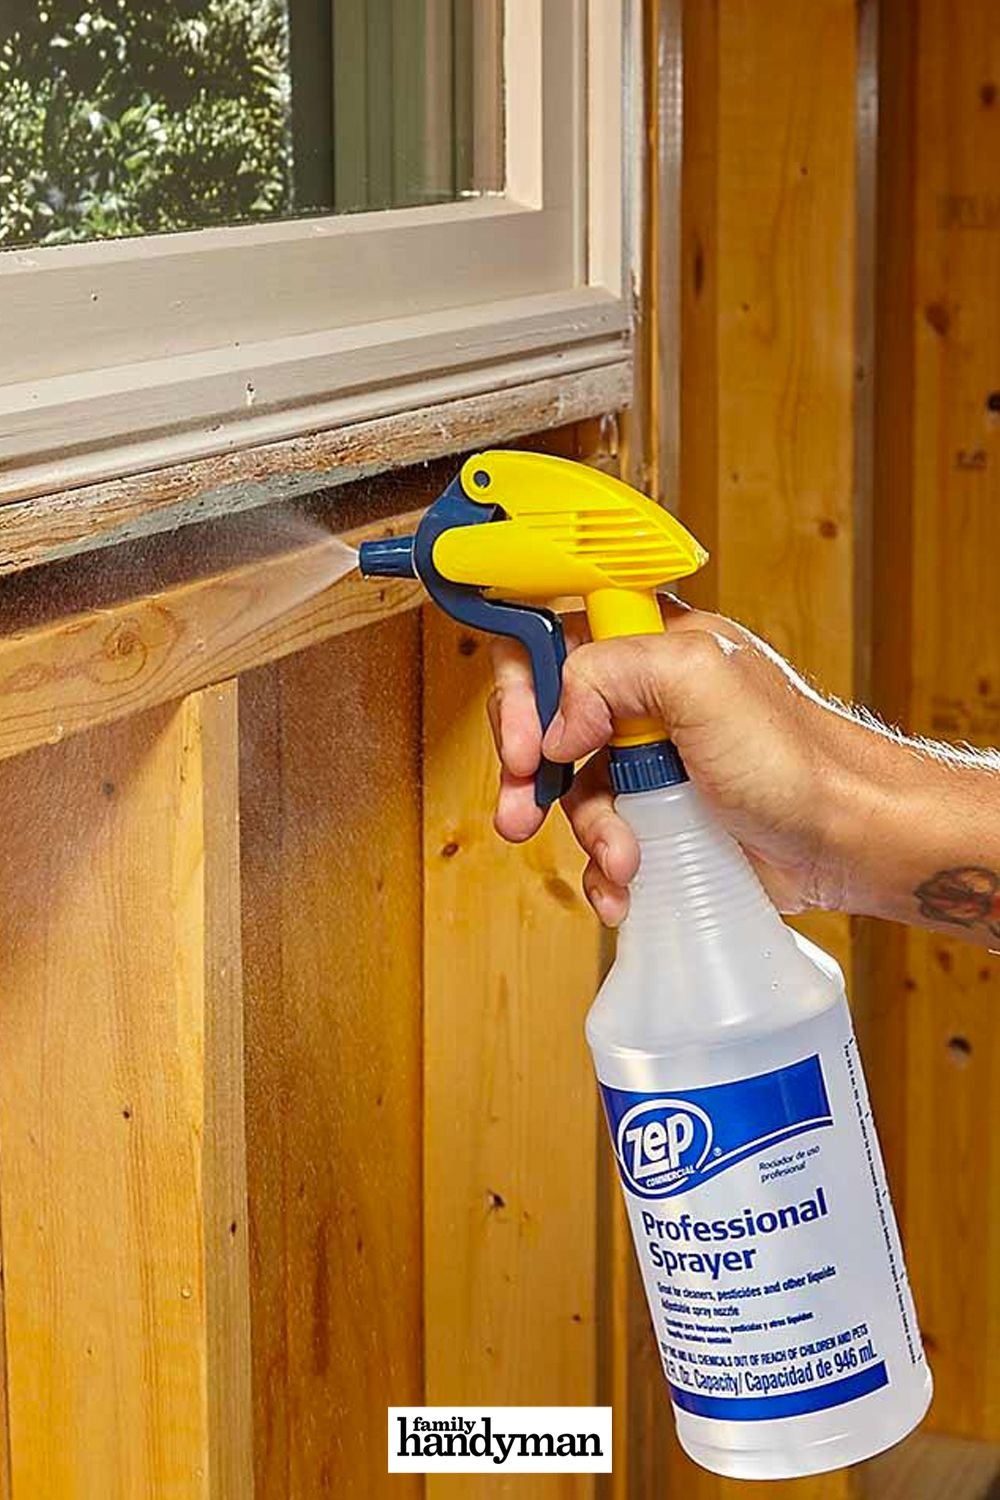 17 Ways To Master Using Spray Foam At Home With Images Expanding Foam Insulation Spray Foam Expanding Foam